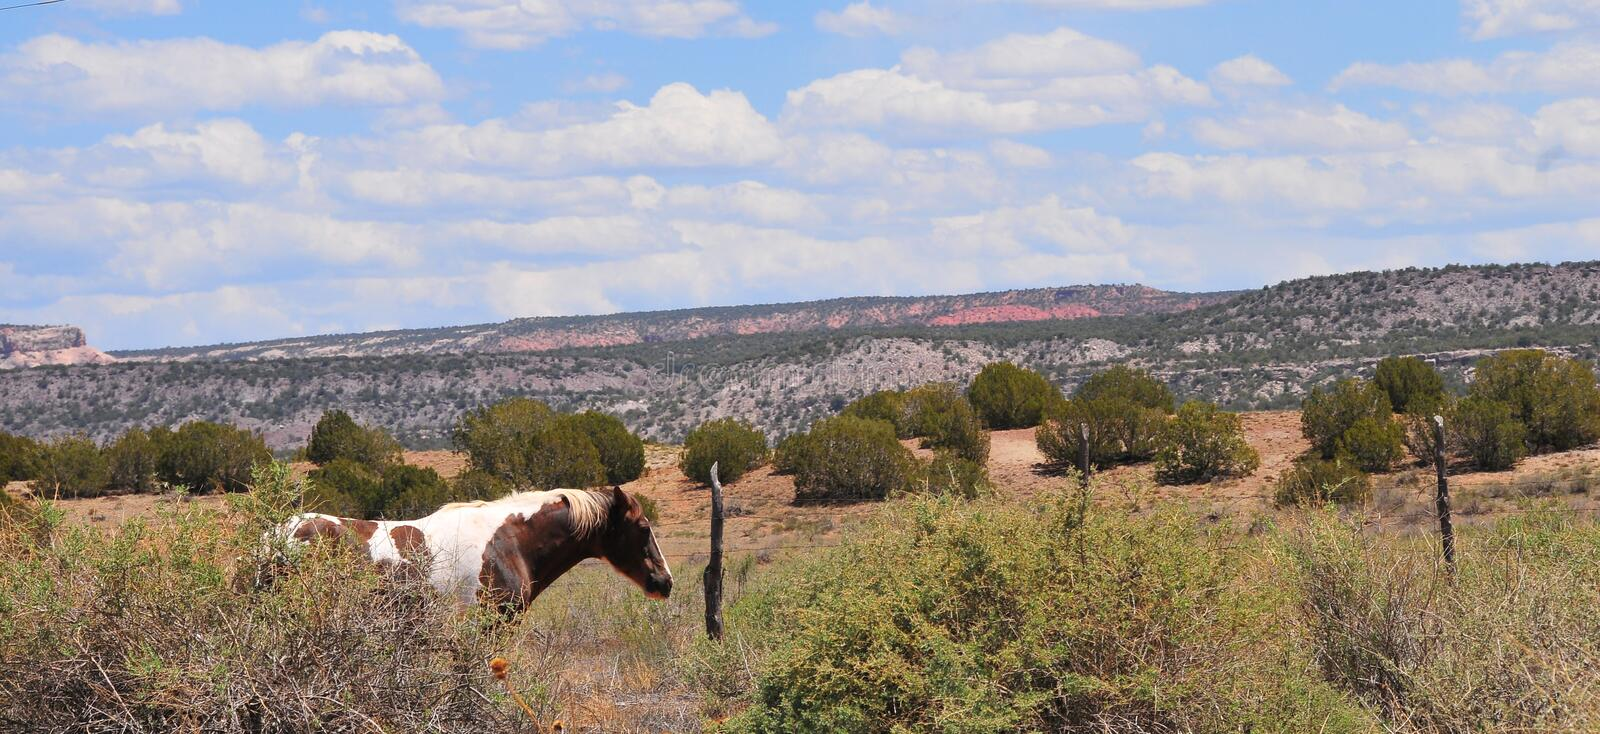 Southwest Landscape with Horses. Grazing along the roadside. Pinto Pony. Native American. Southwestern scenery. Barbed wire fence posts. Mesa in the distance stock photos